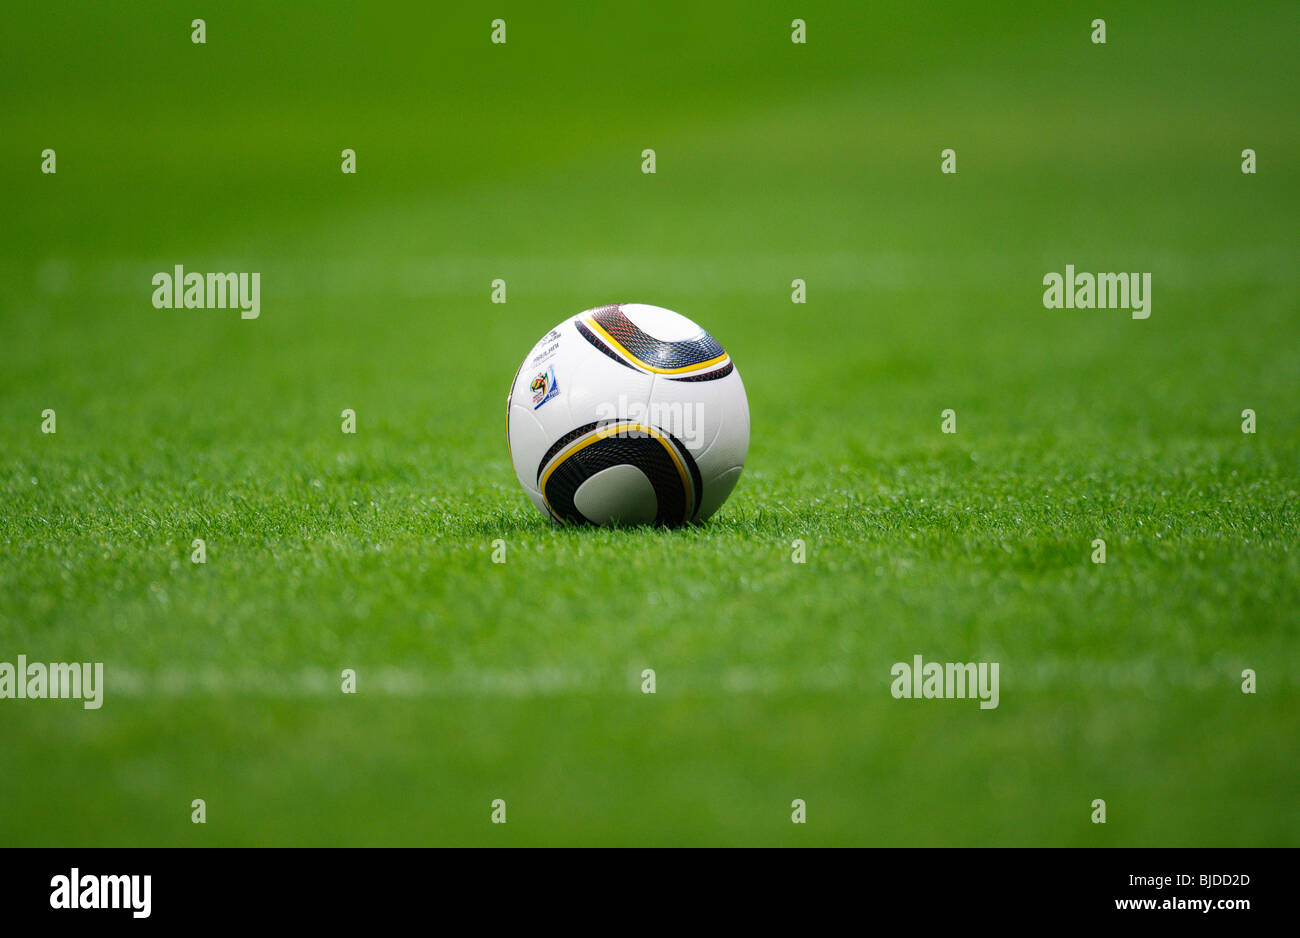 Jabulani, official matchball of th FIFA Football World Cup 2010 in South Africa on  green pitch - Stock Image